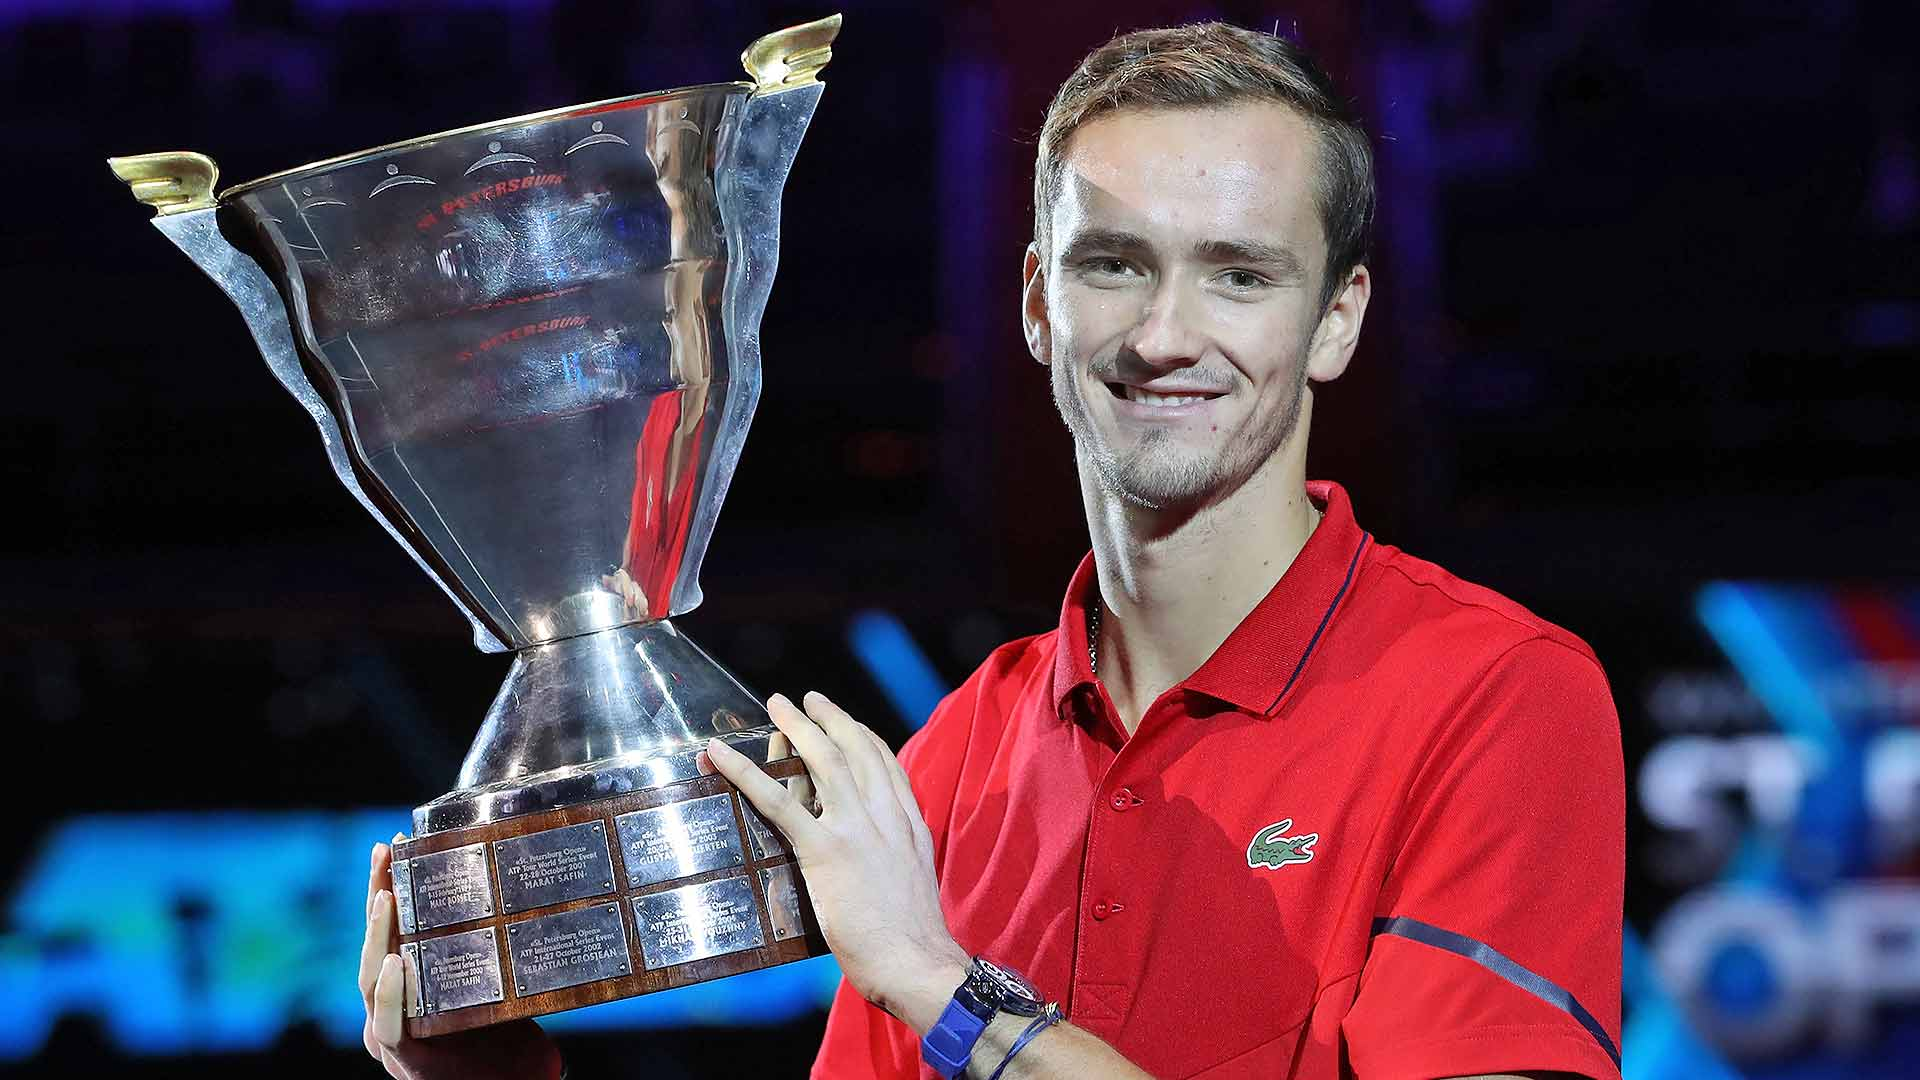 <a href='https://www.atptour.com/en/players/daniil-medvedev/mm58/overview'>Daniil Medvedev</a> beats <a href='https://www.atptour.com/en/players/borna-coric/cg80/overview'>Borna Coric</a> to win his third title of 2019 on Sunday at the <a href='https://www.atptour.com/en/tournaments/st-petersburg/568/overview'>St. Petersburg Open</a>